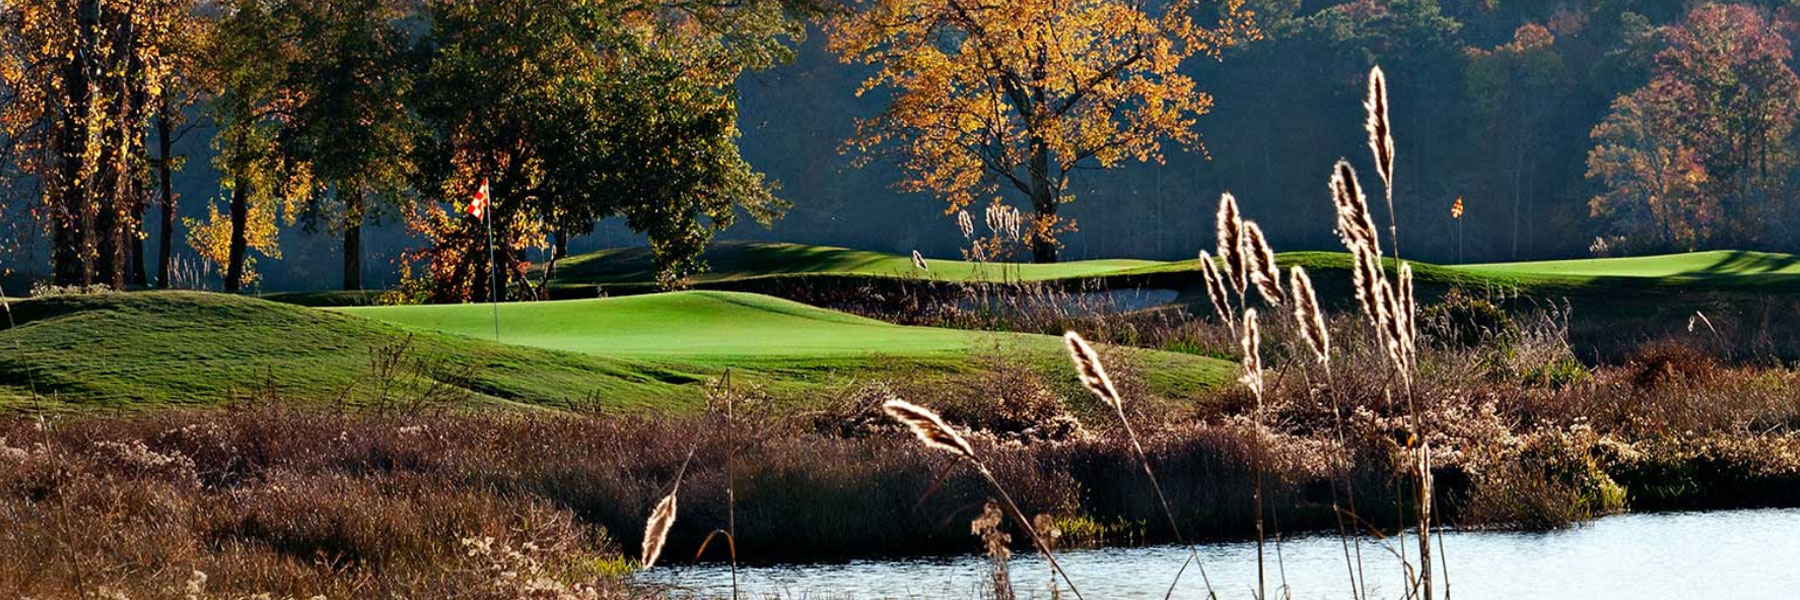 Alabama Golf Vacation Packages